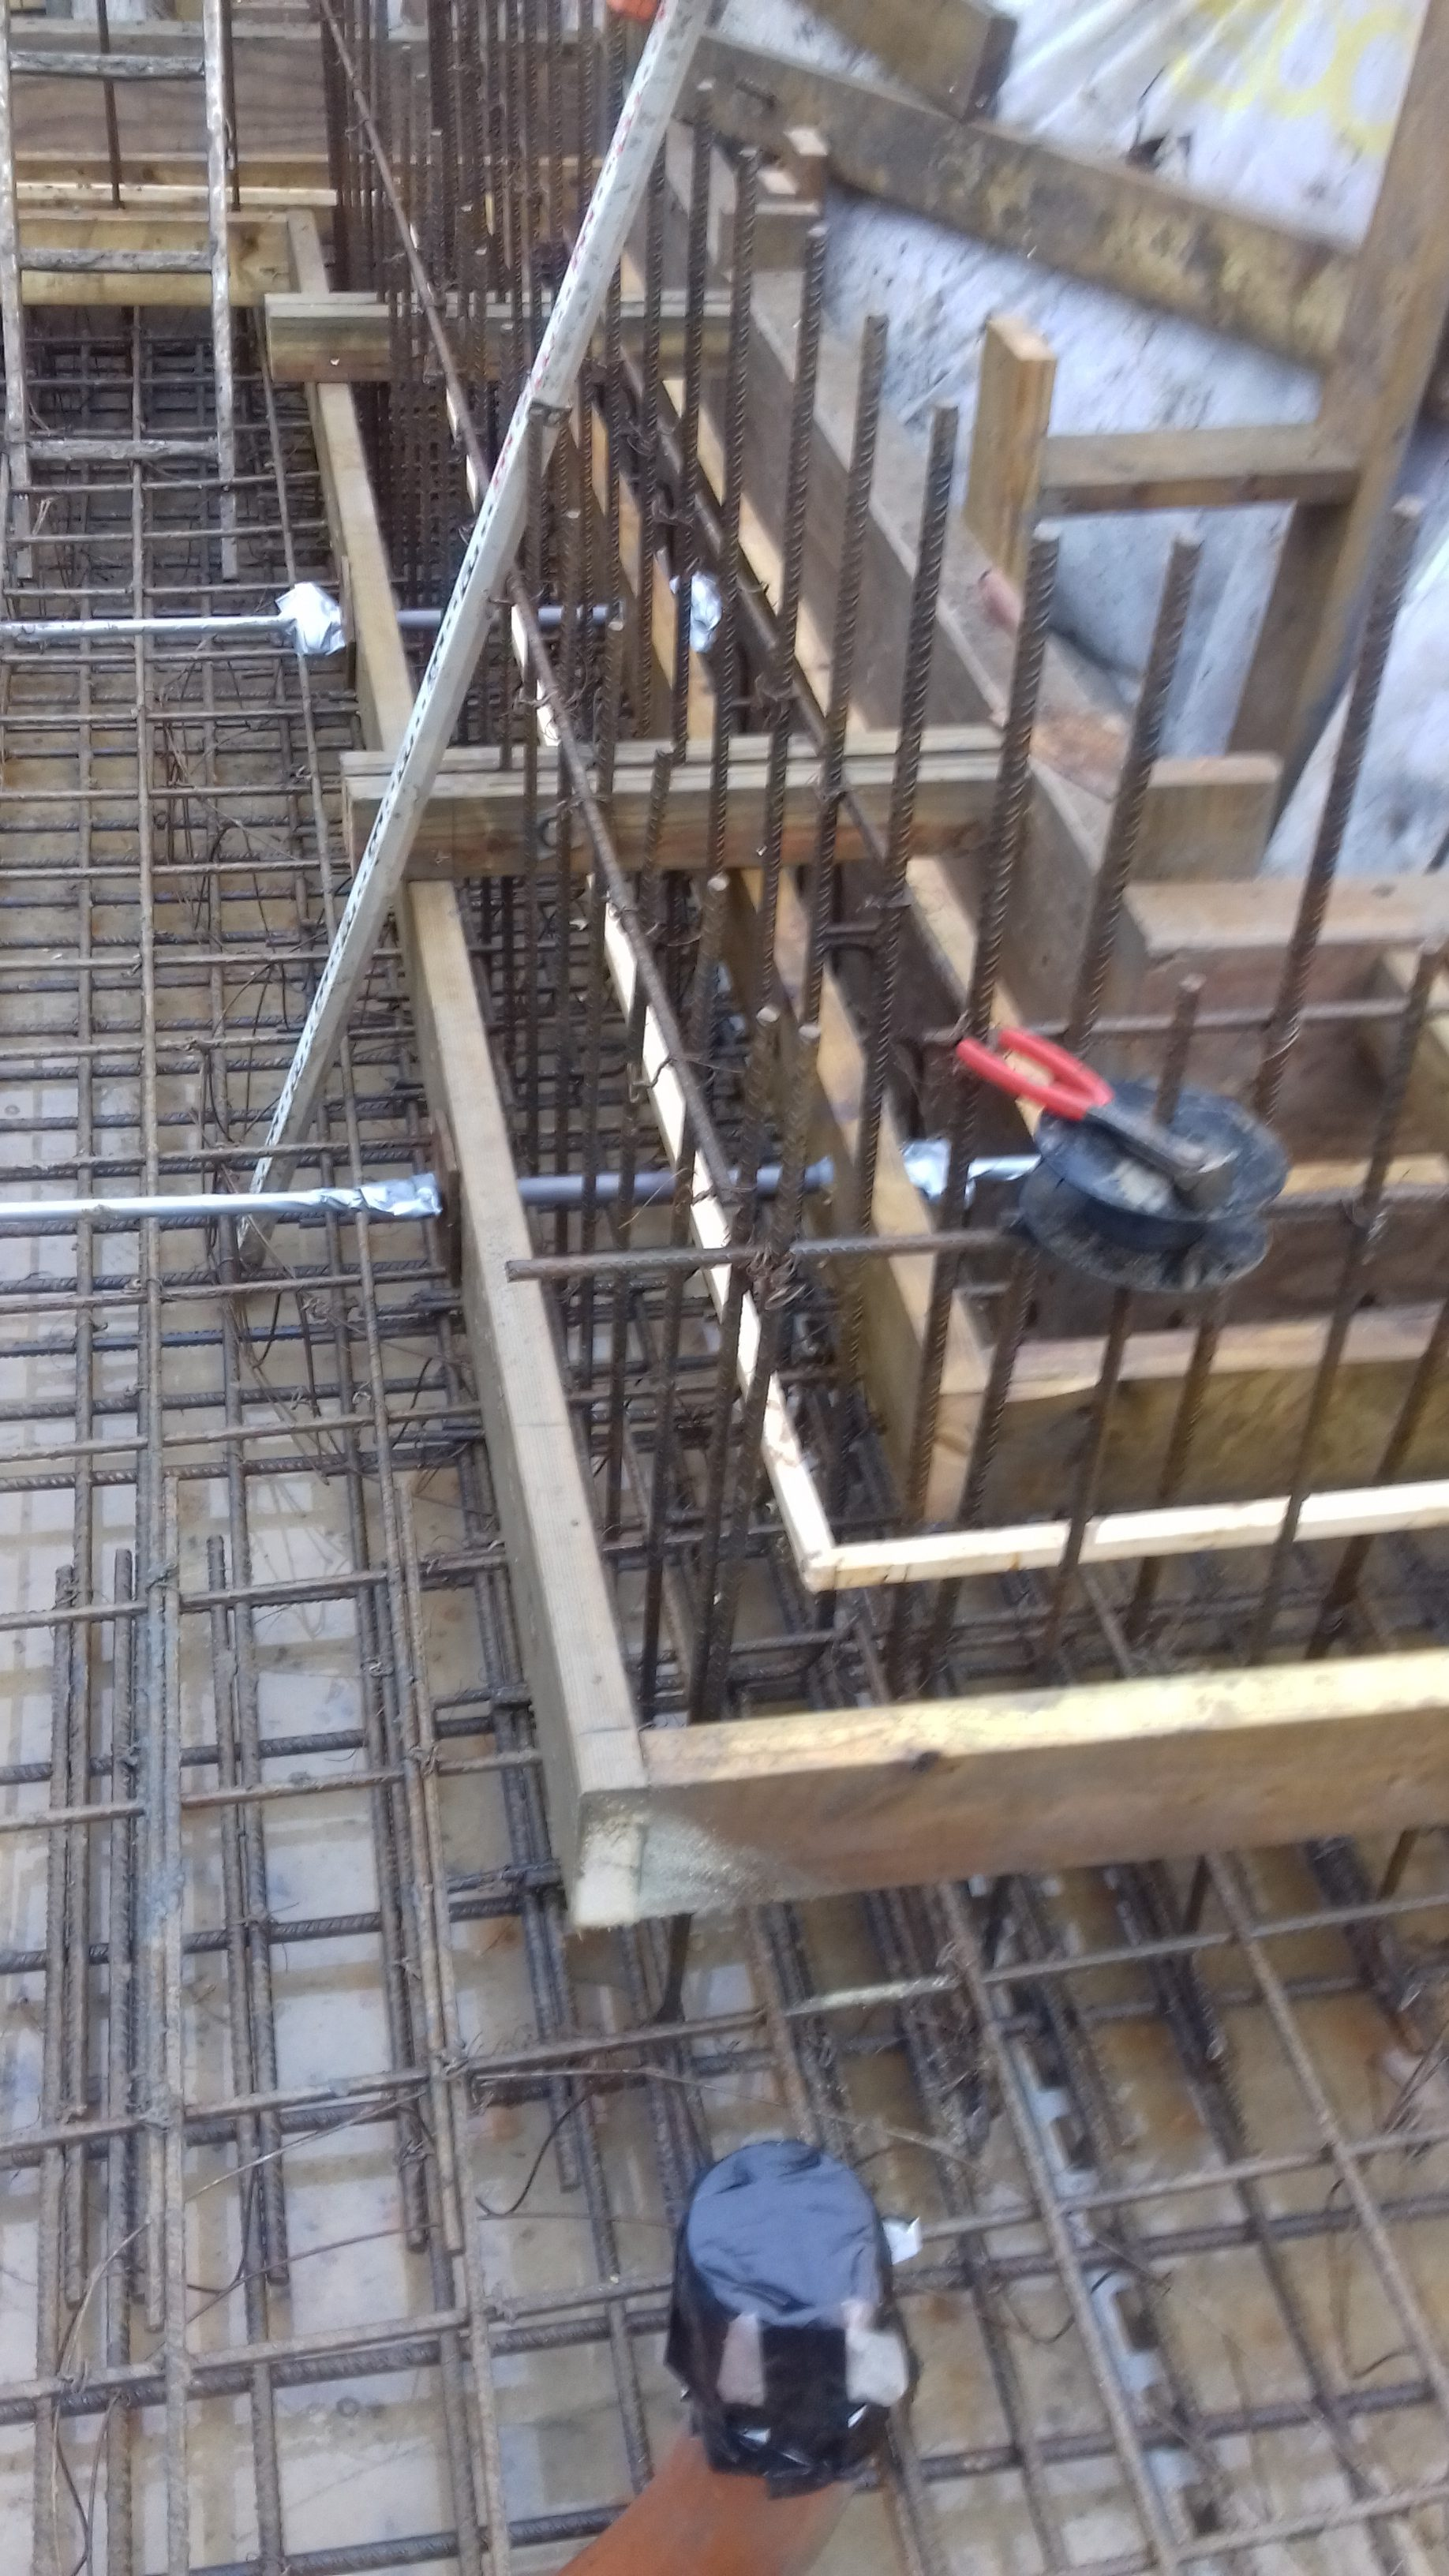 Kicker construction with central timber to allow for installation of an expanding water stop